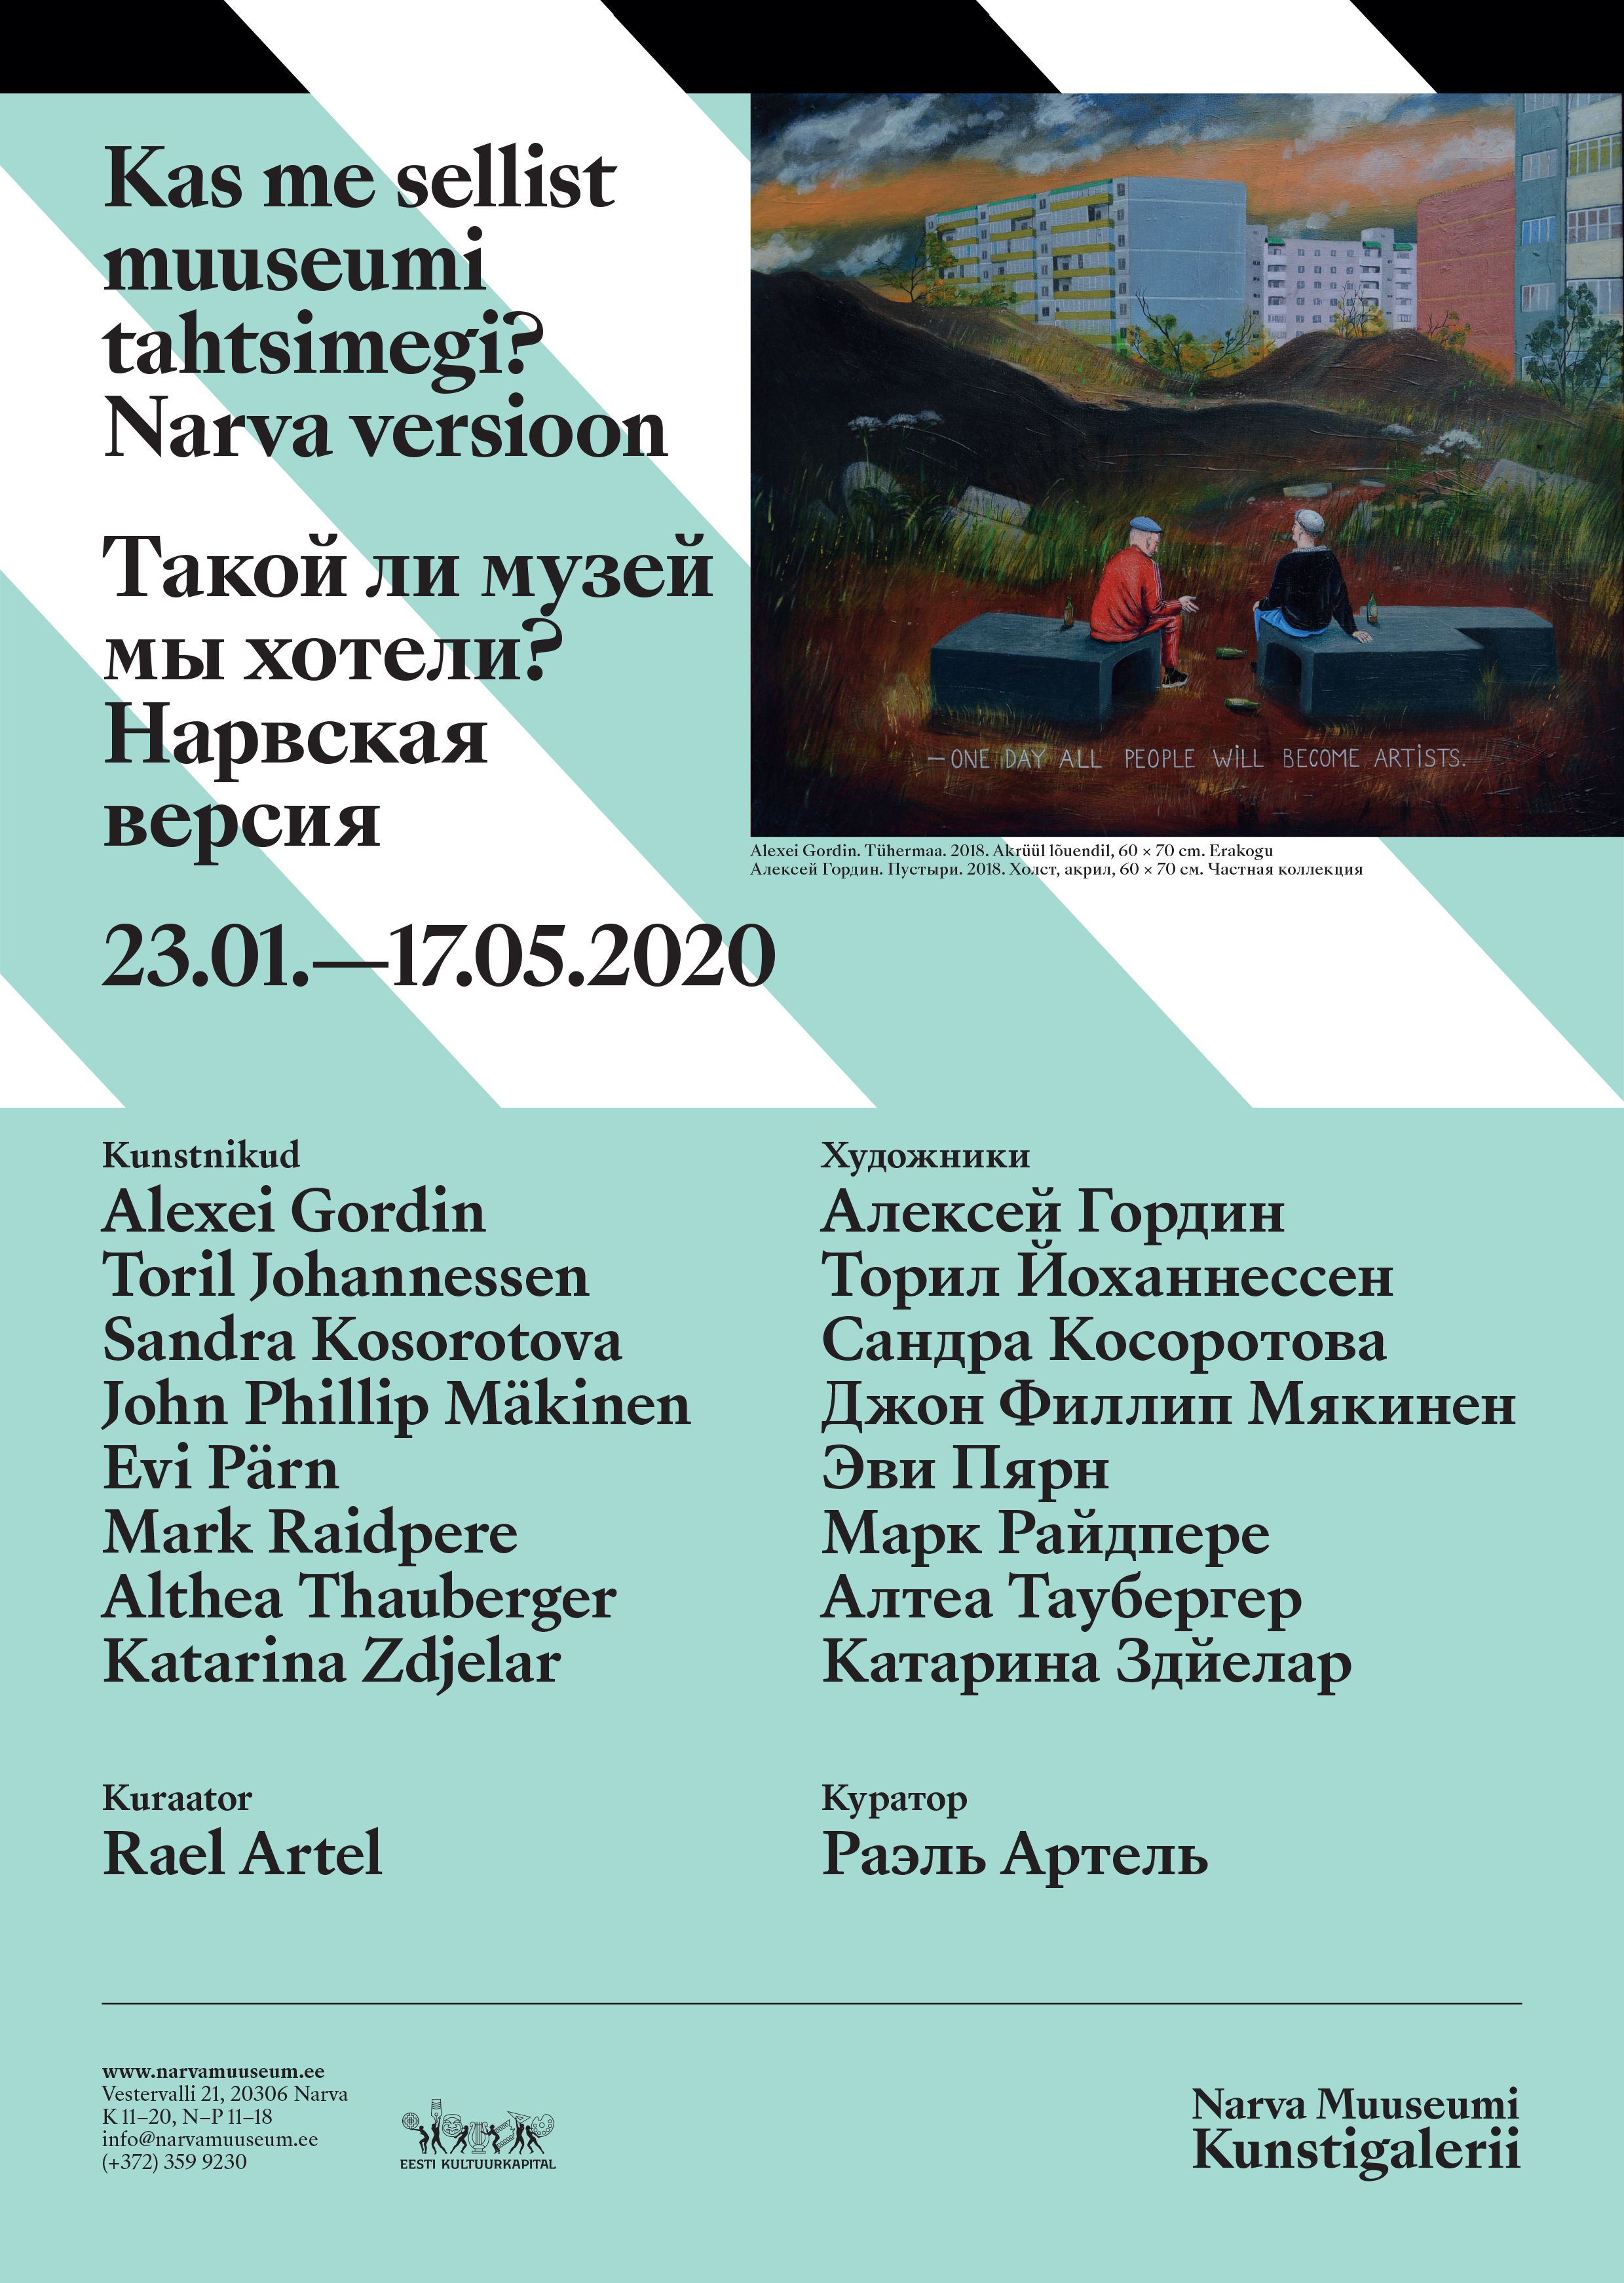 Exhibition Is This the Museum We Wanted? The Narva Version